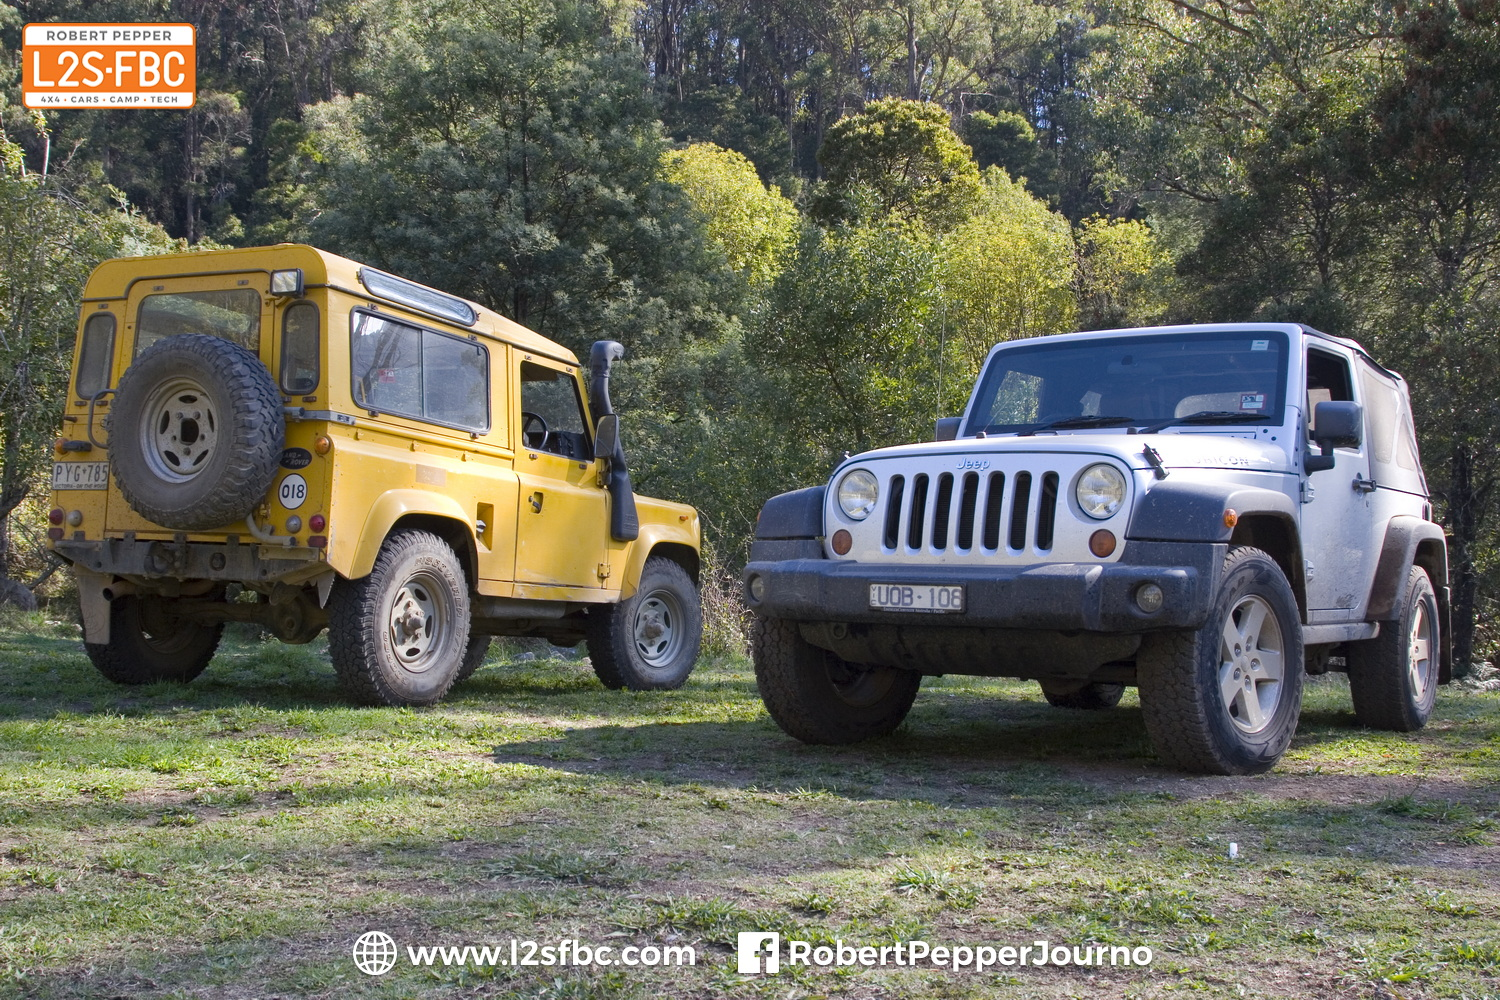 Let's try and understand Land Rover and Jeep owners